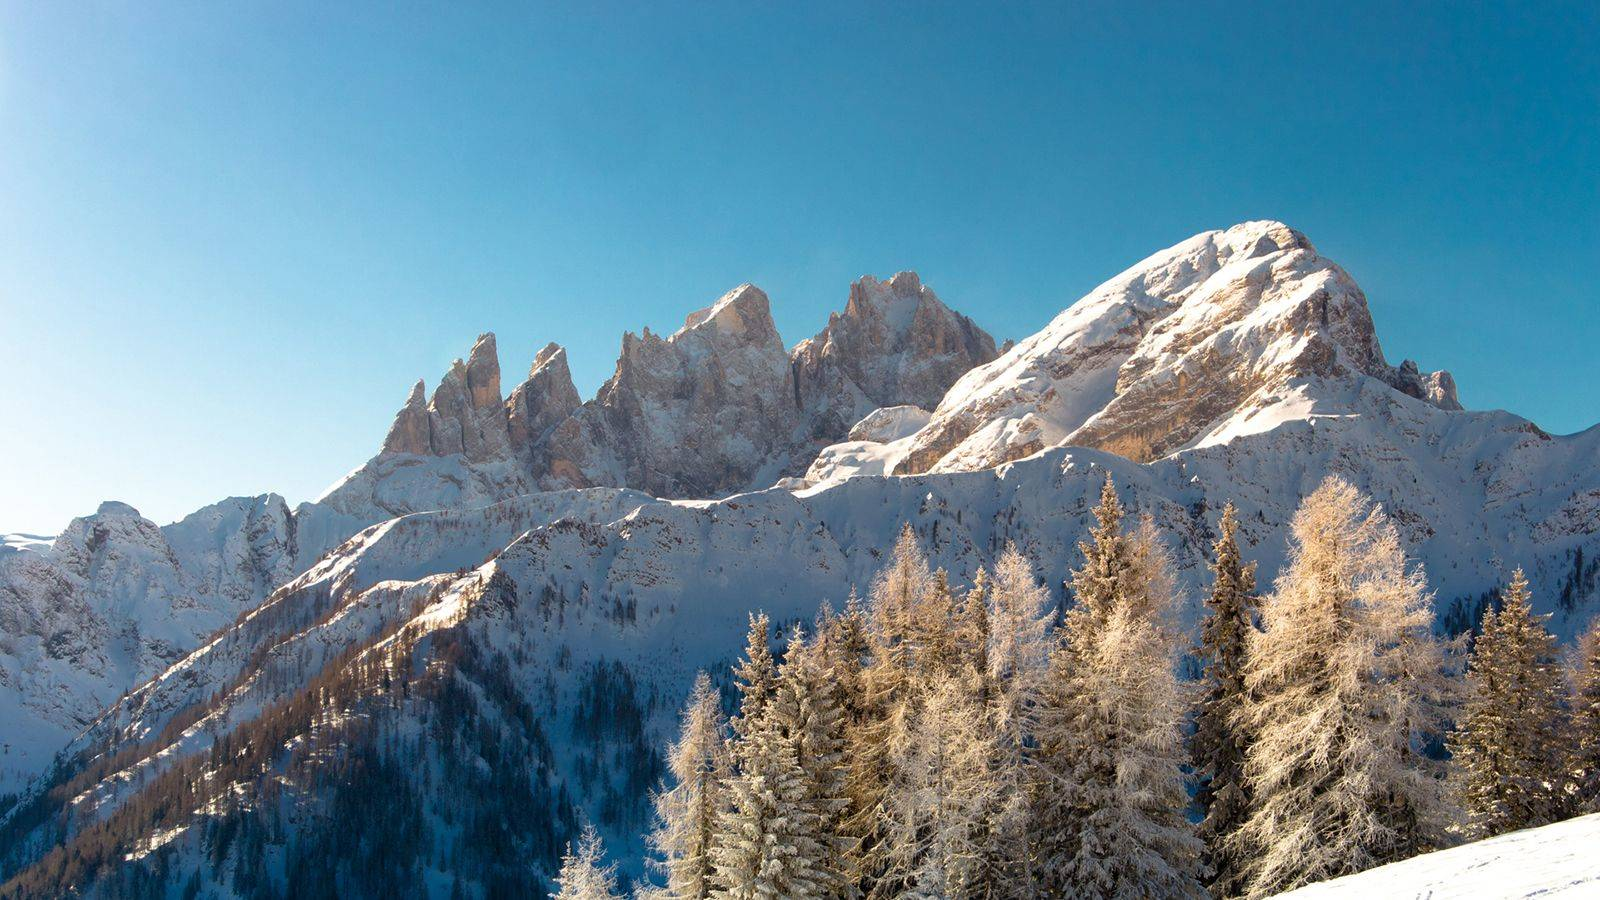 View of the surrounding snowy Dolomites